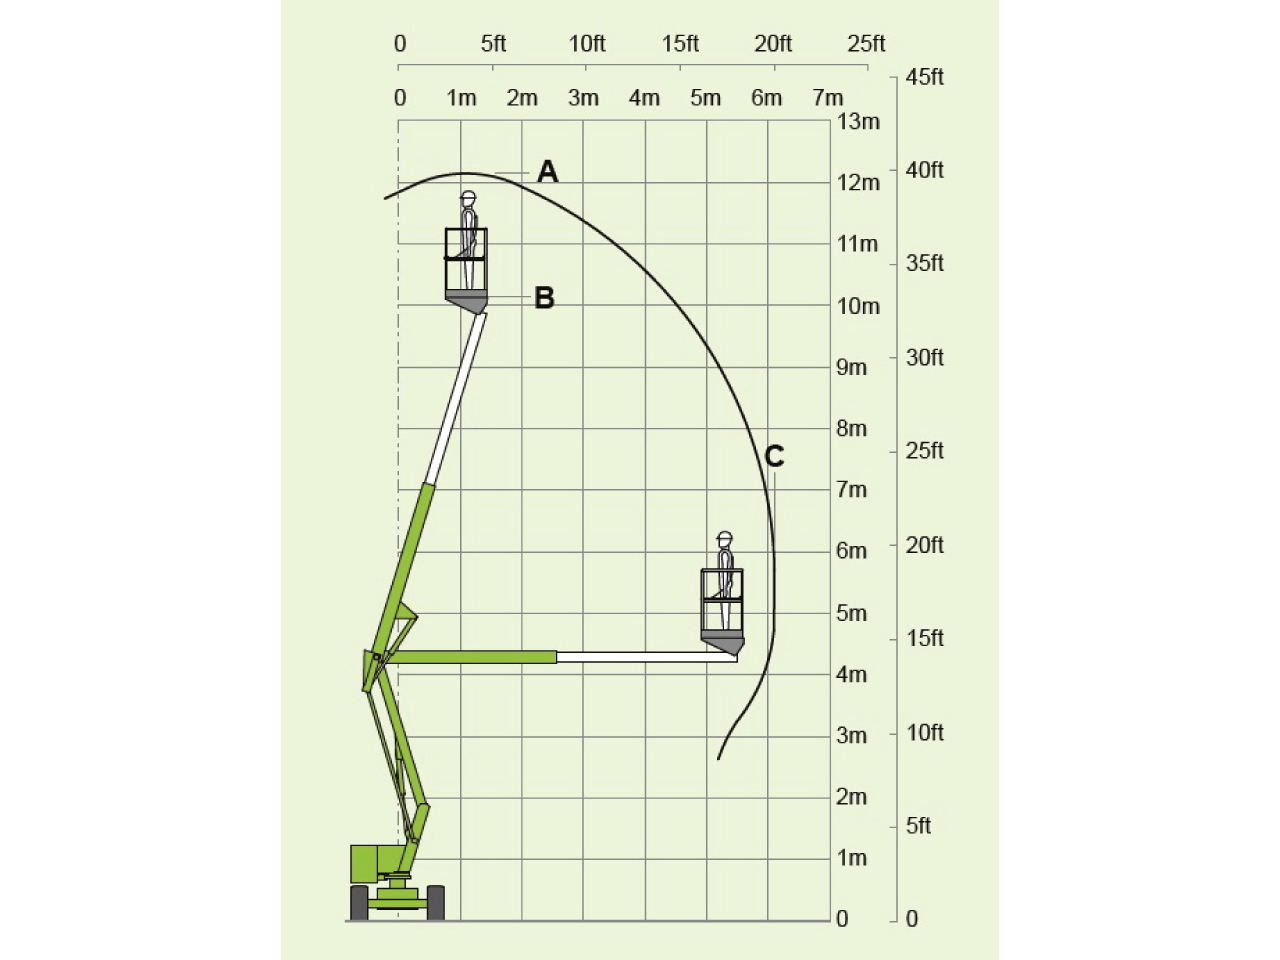 Nifty-HR-12-Electrical-Cherry-picker-Diagram